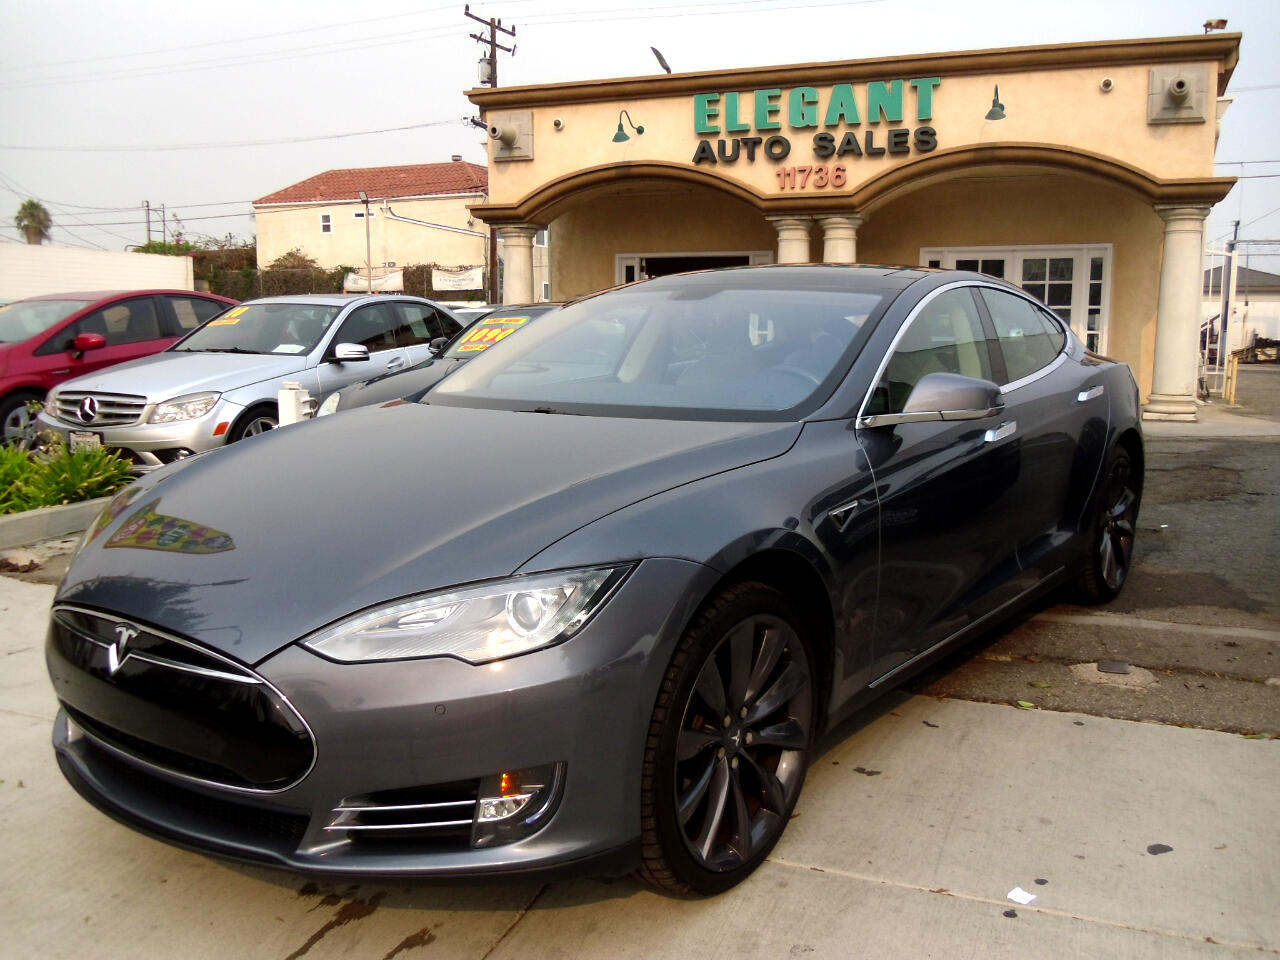 Tesla Model S 4dr Sdn 85 kWh Battery 2014